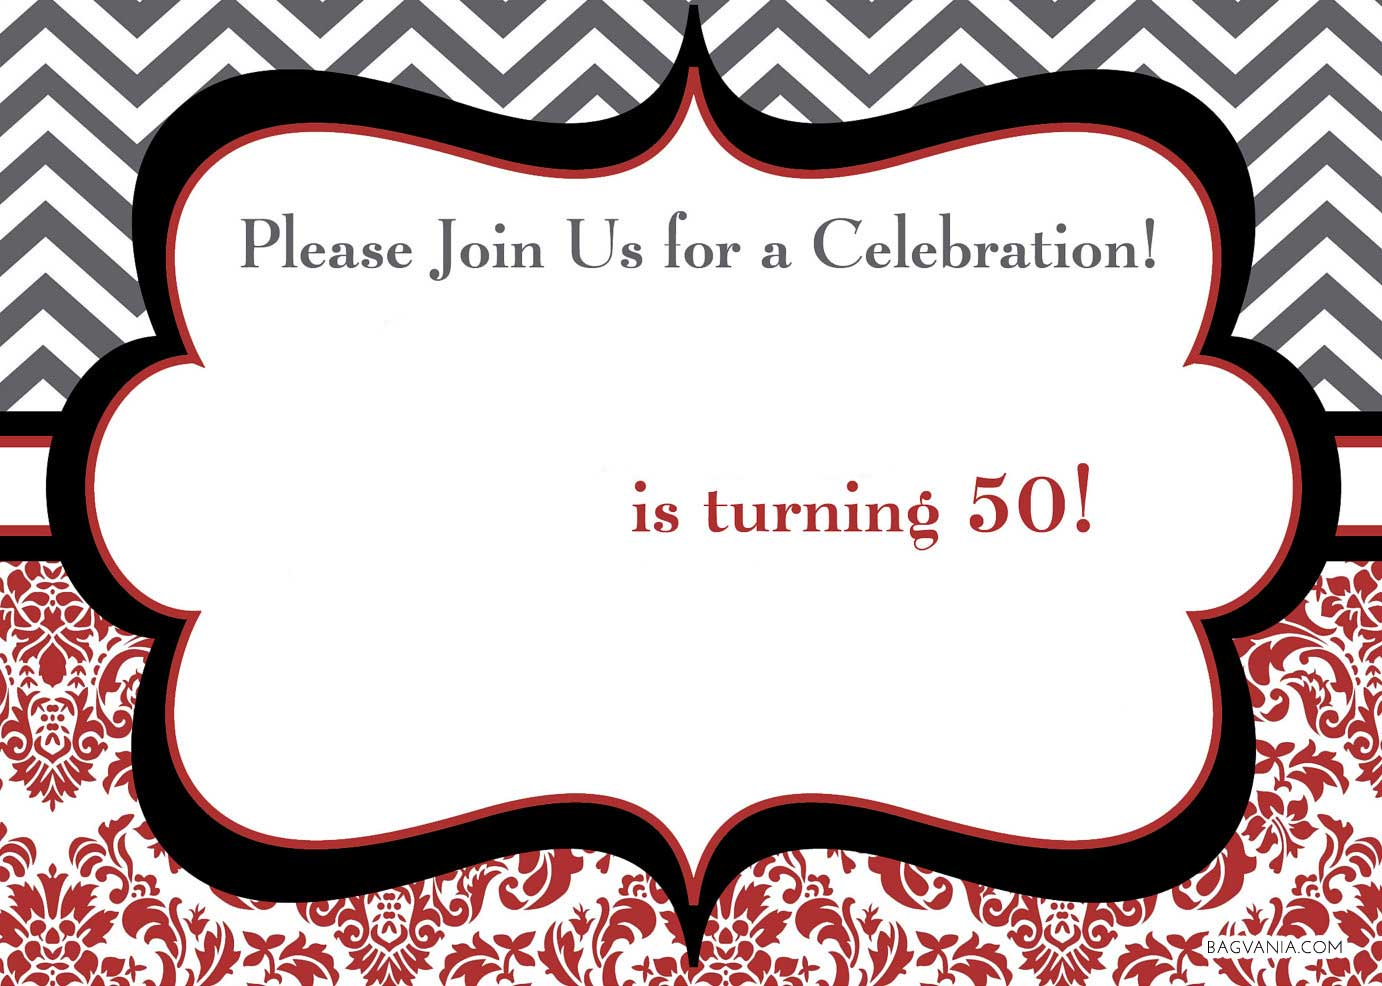 The Other Reason Why You Should Choose This Template Is Because Free Printable 50th Birthday Invitations Below Comes In HD Quality